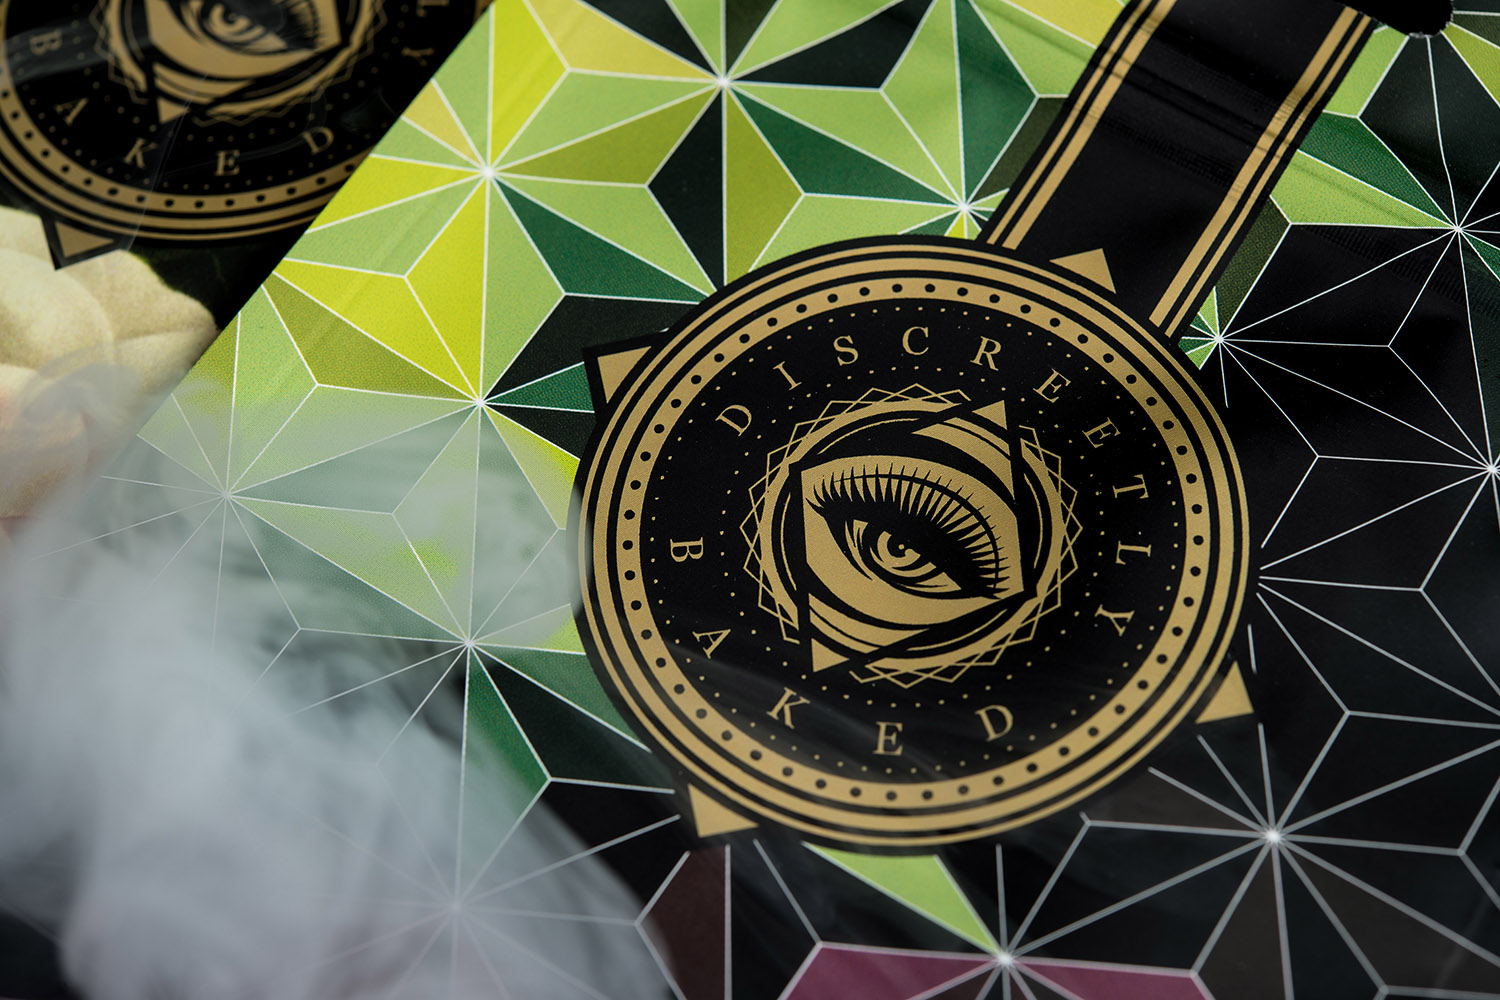 Branding and Packaging Design for Discreetly Baked Luxury Cannabis